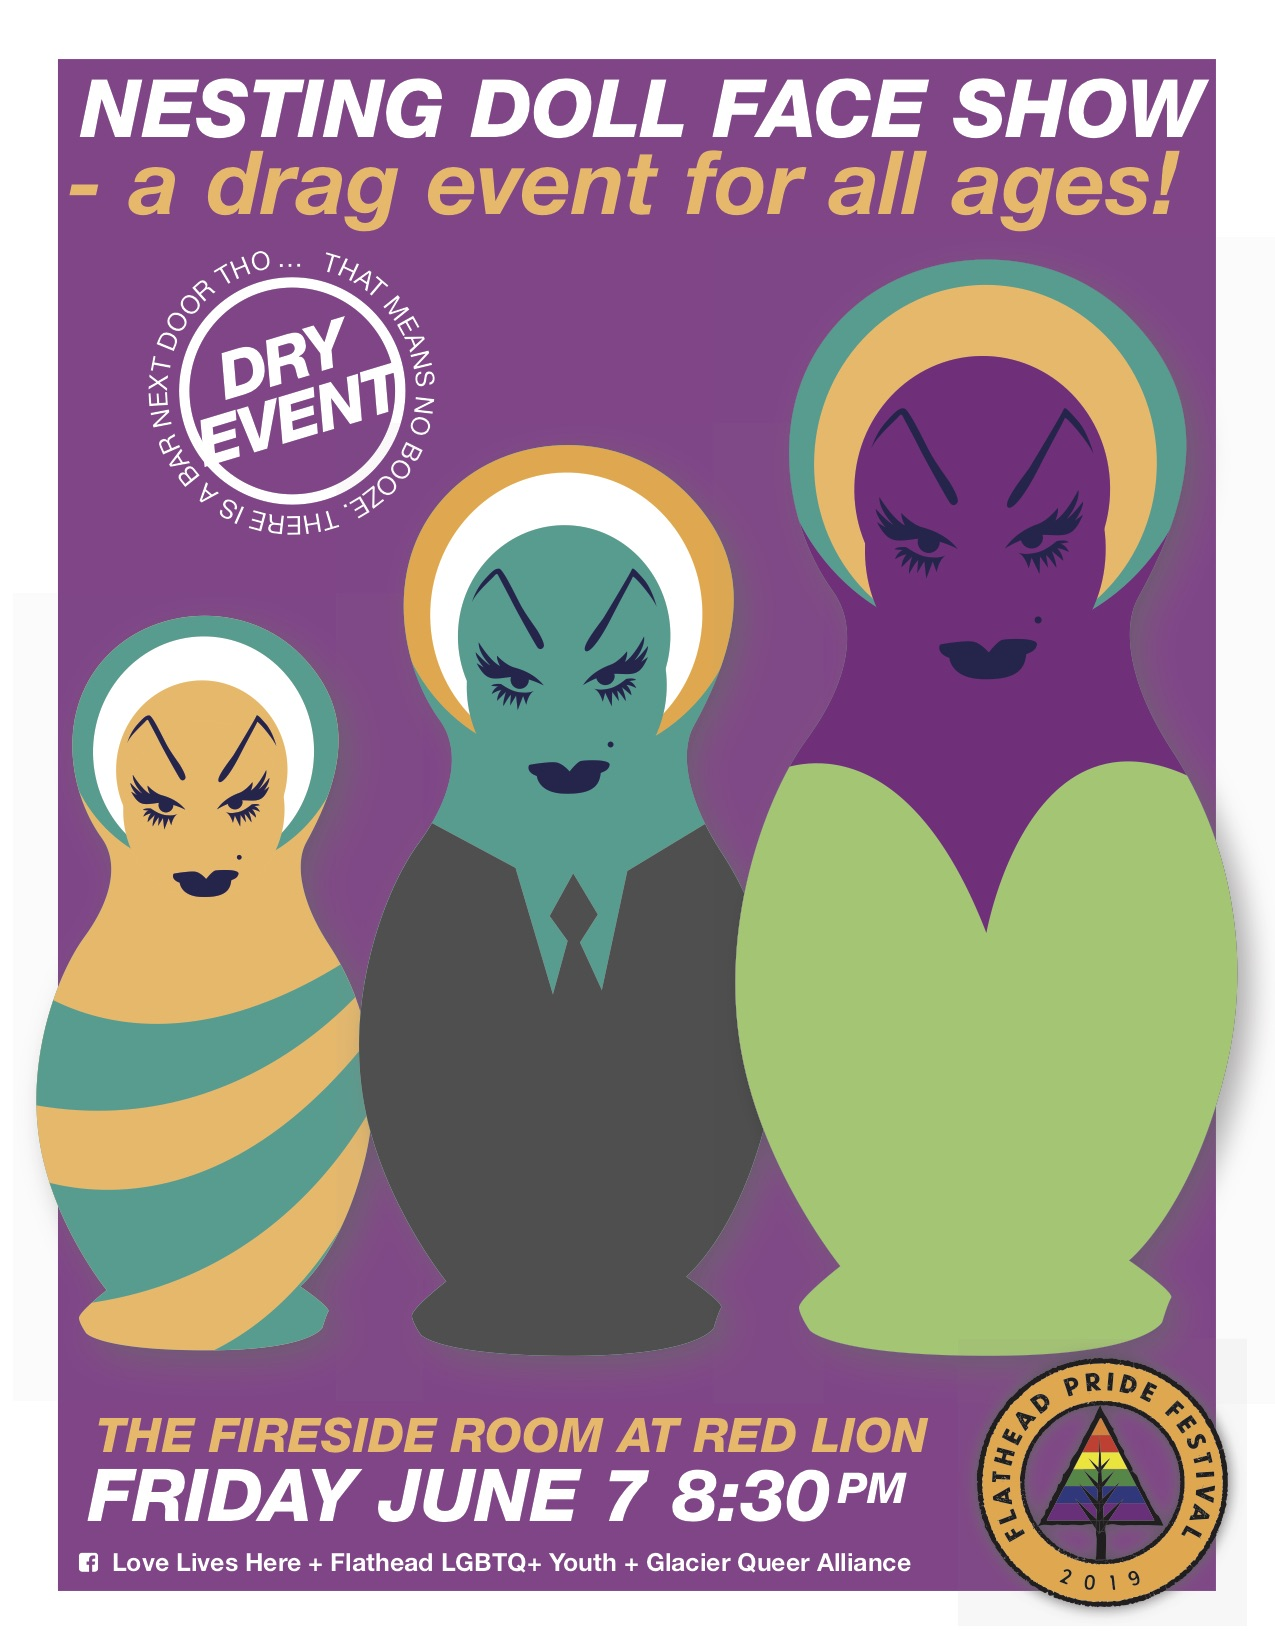 8-11 pm on Friday, June 7 Fireside Room at Red Lion 20 S Main St., Suite 150, Kalispell